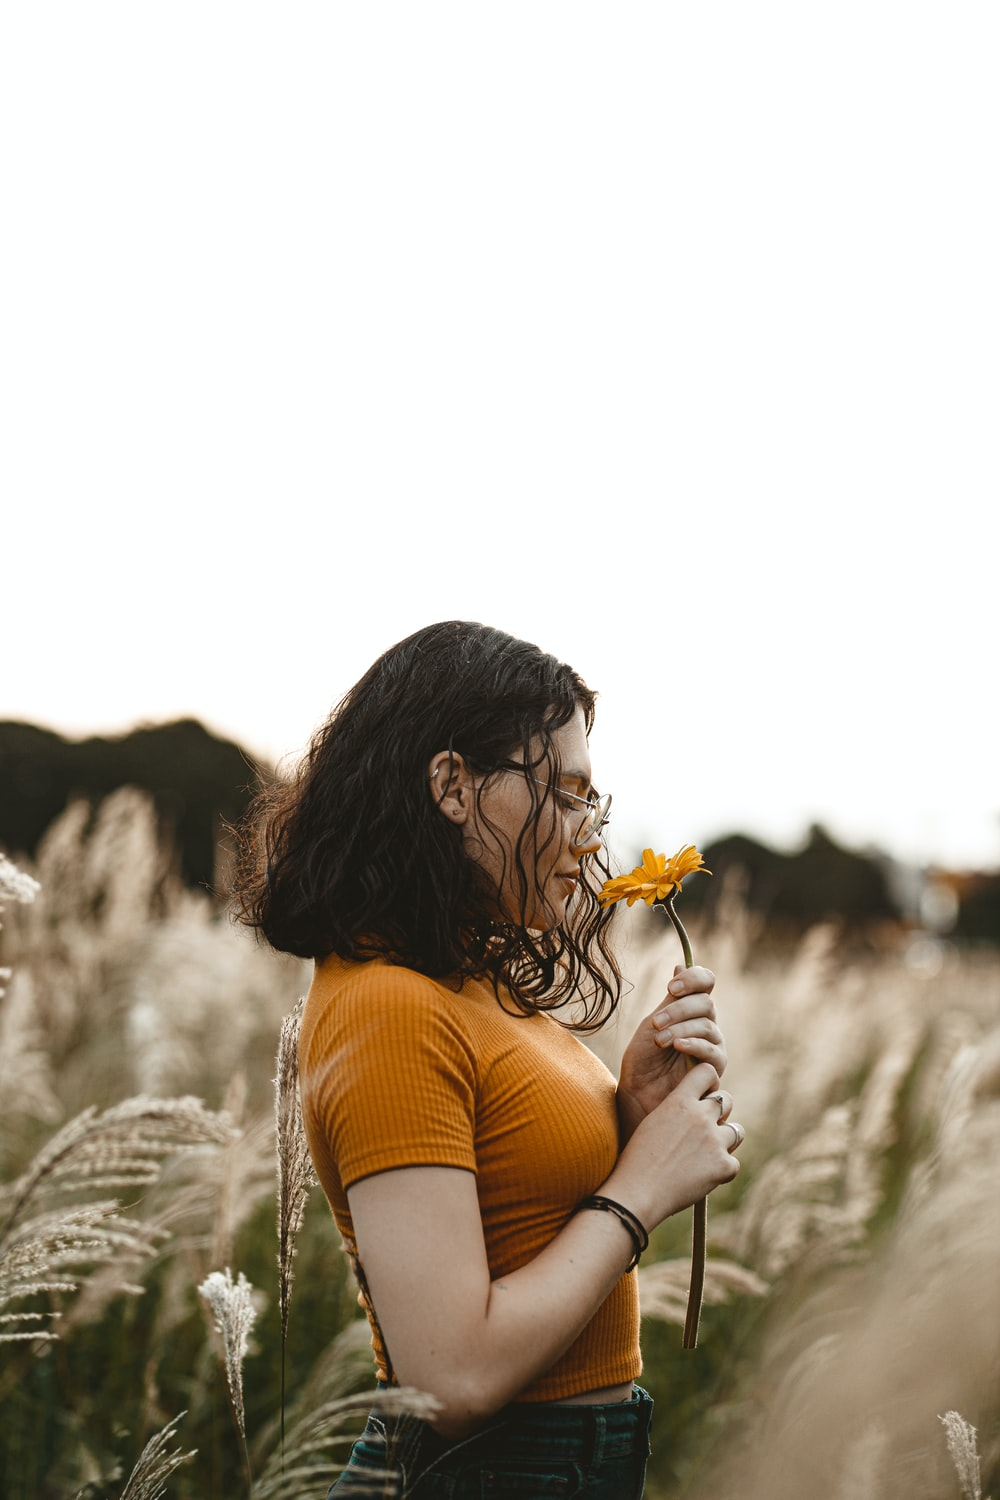 woman in orange tank top holding yellow flower during daytime